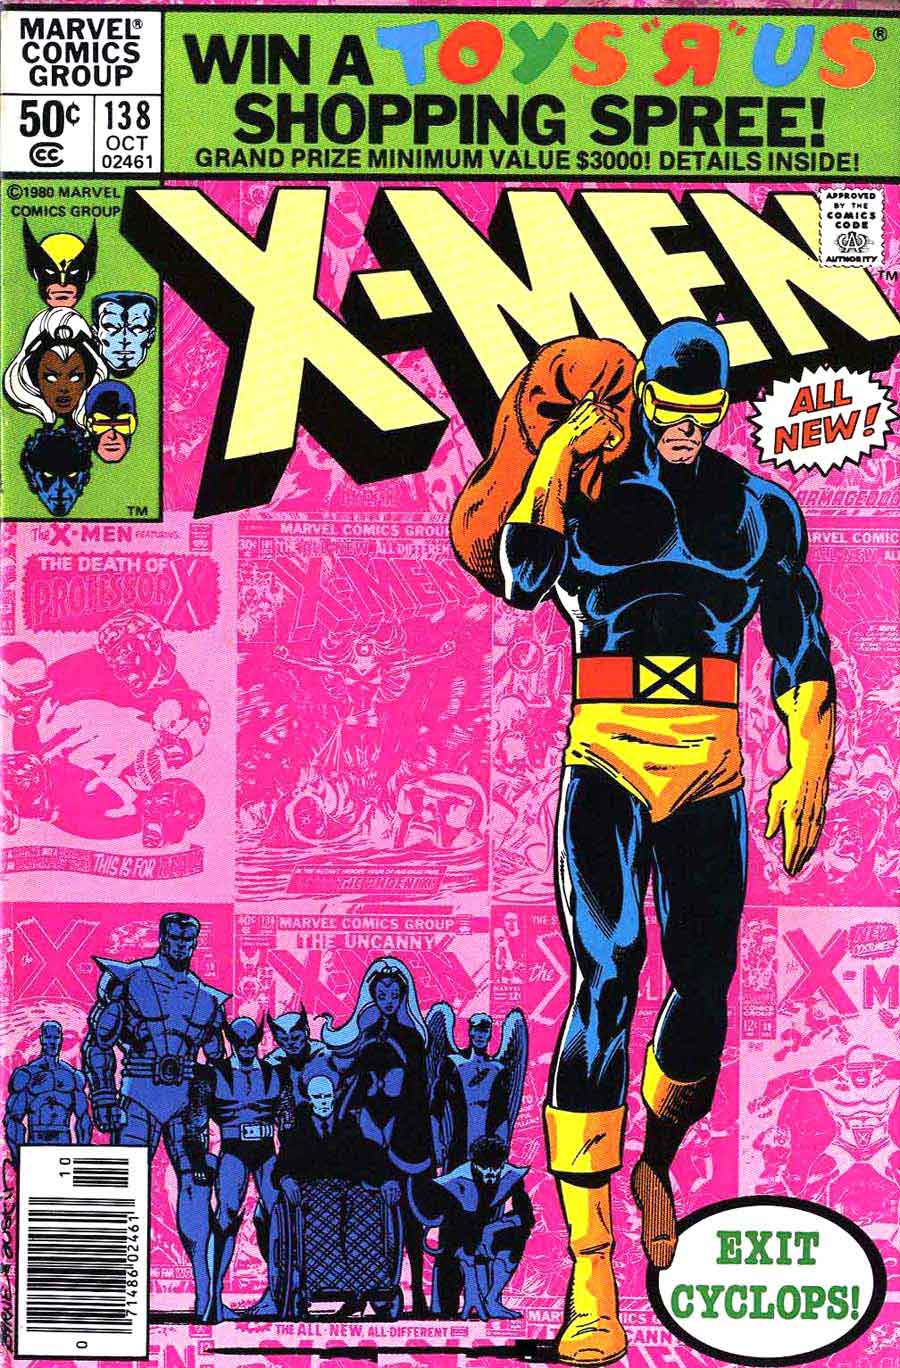 X-men v1 #138 marvel comic book cover art by John Byrne